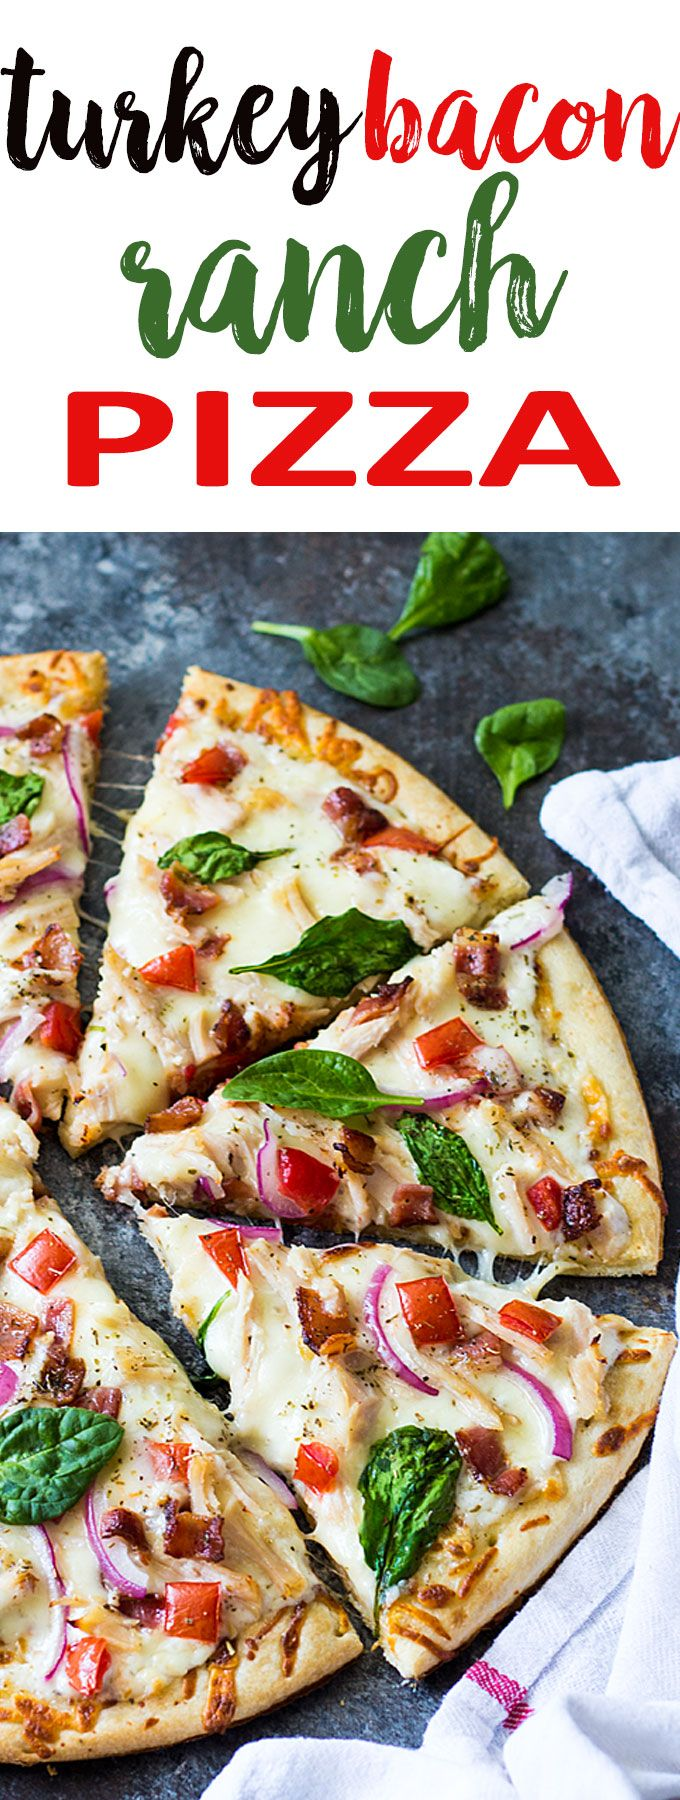 Turkey Bacon Ranch Pizza - A quick, easy and delicious pizza to recycle leftover turkey!